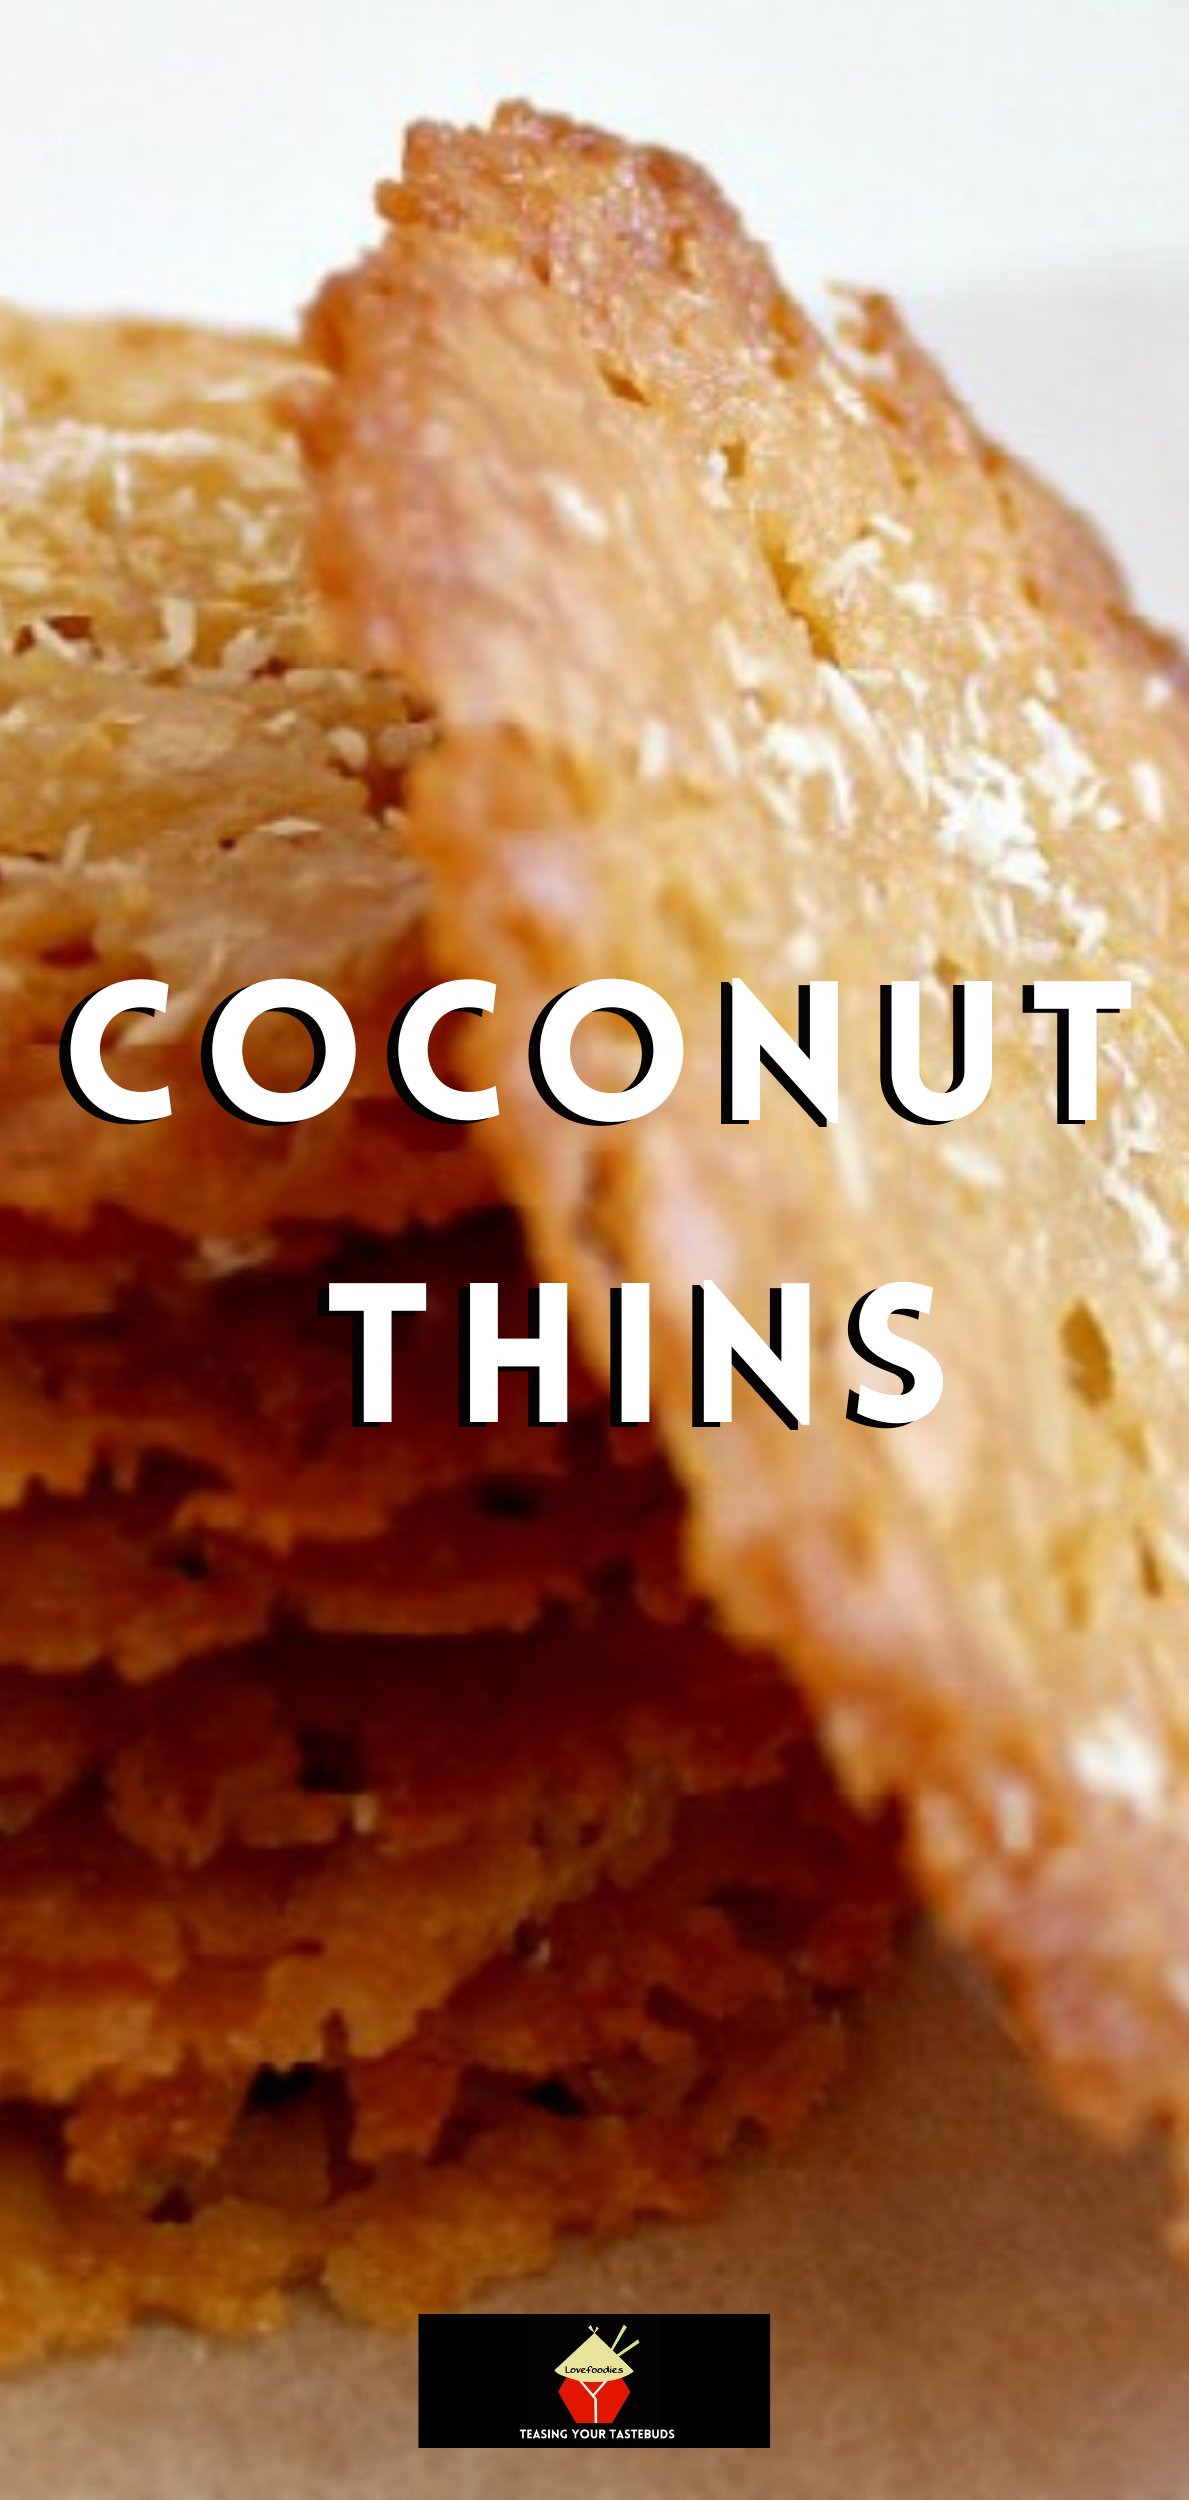 Coconut Thins. If you like crisp, caramel, coconut, and sweet then these little treats are for you! They're absolutely delicious and will store for up to a week if you wish to make ahead.